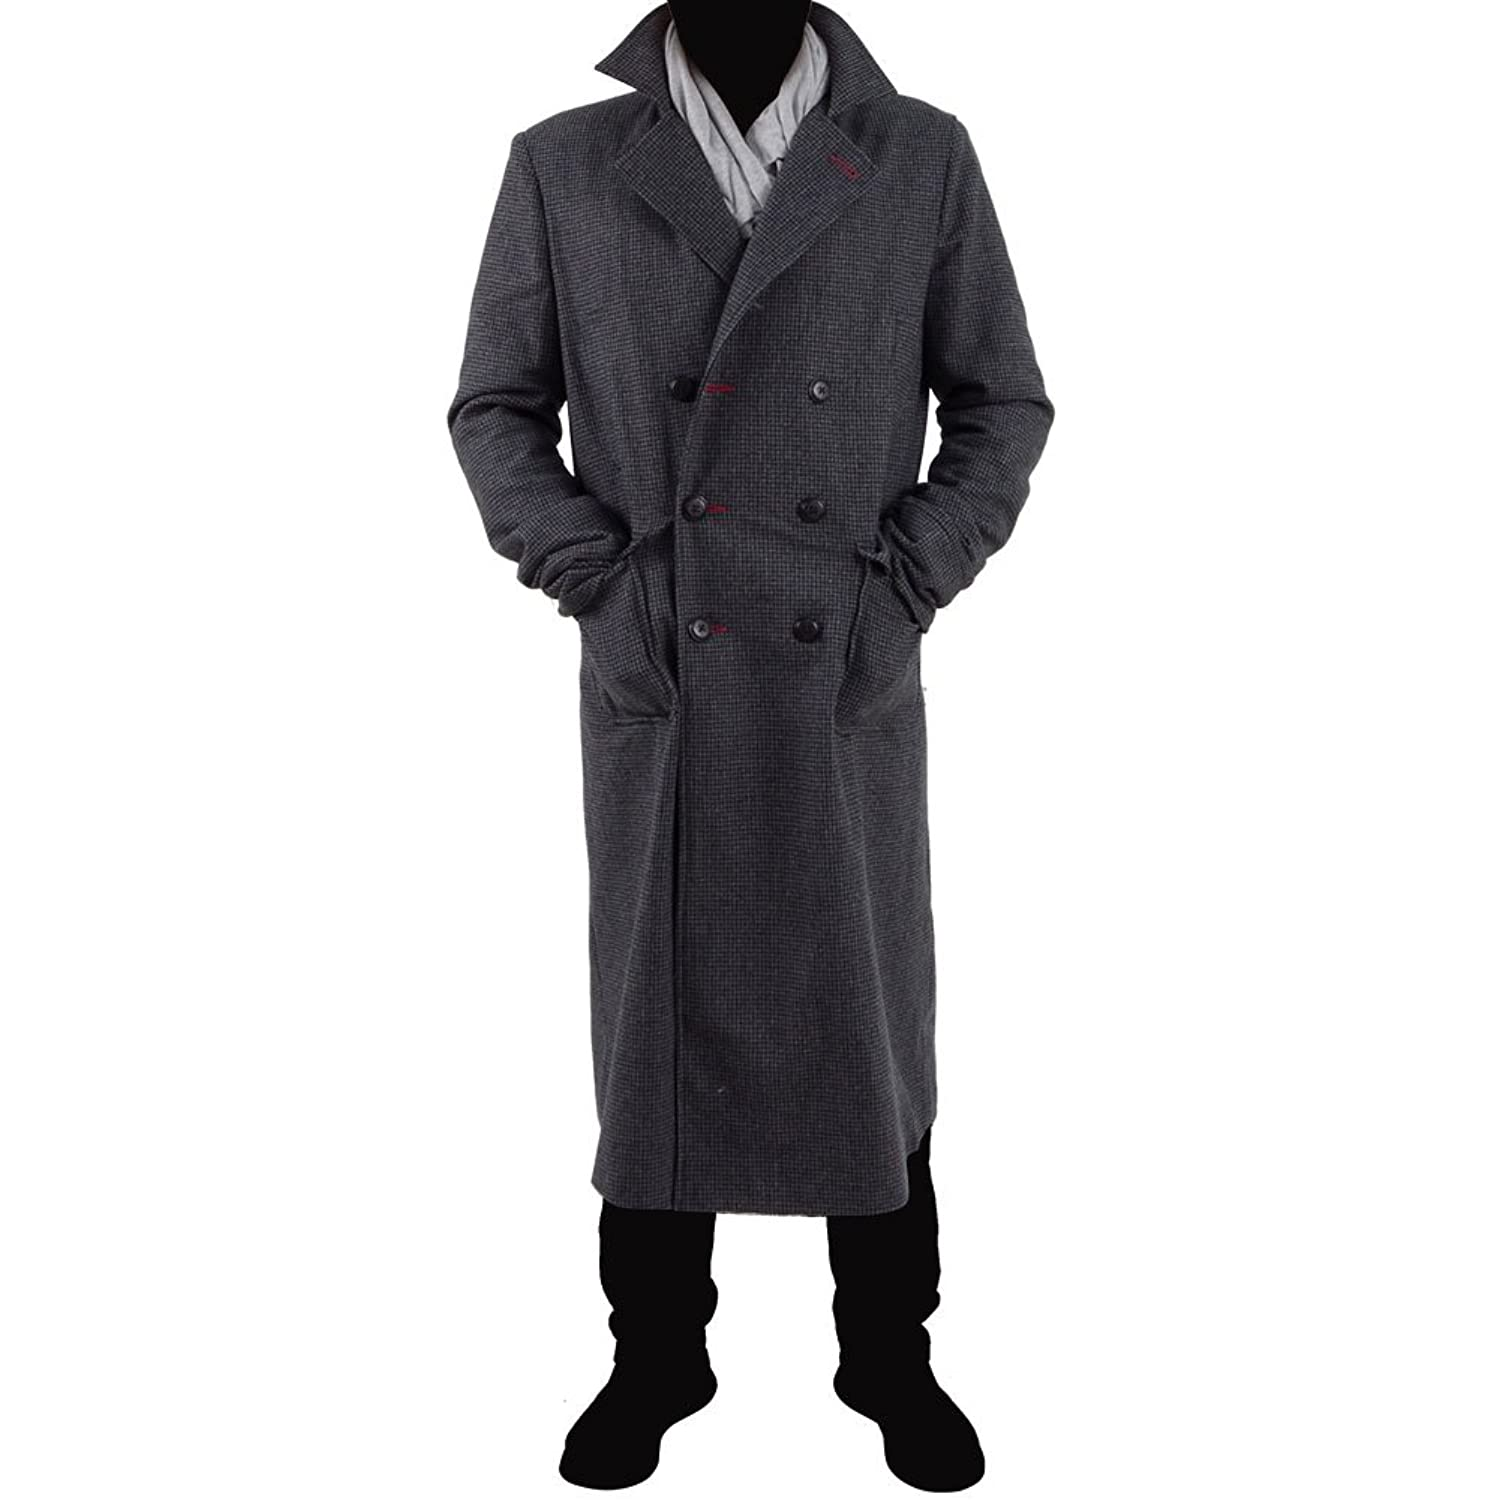 1920s Men's Clothing Mens Plaids And Tweeds Long Trench Coat Halloween Cosplay Costume Overcoat $100.00 AT vintagedancer.com